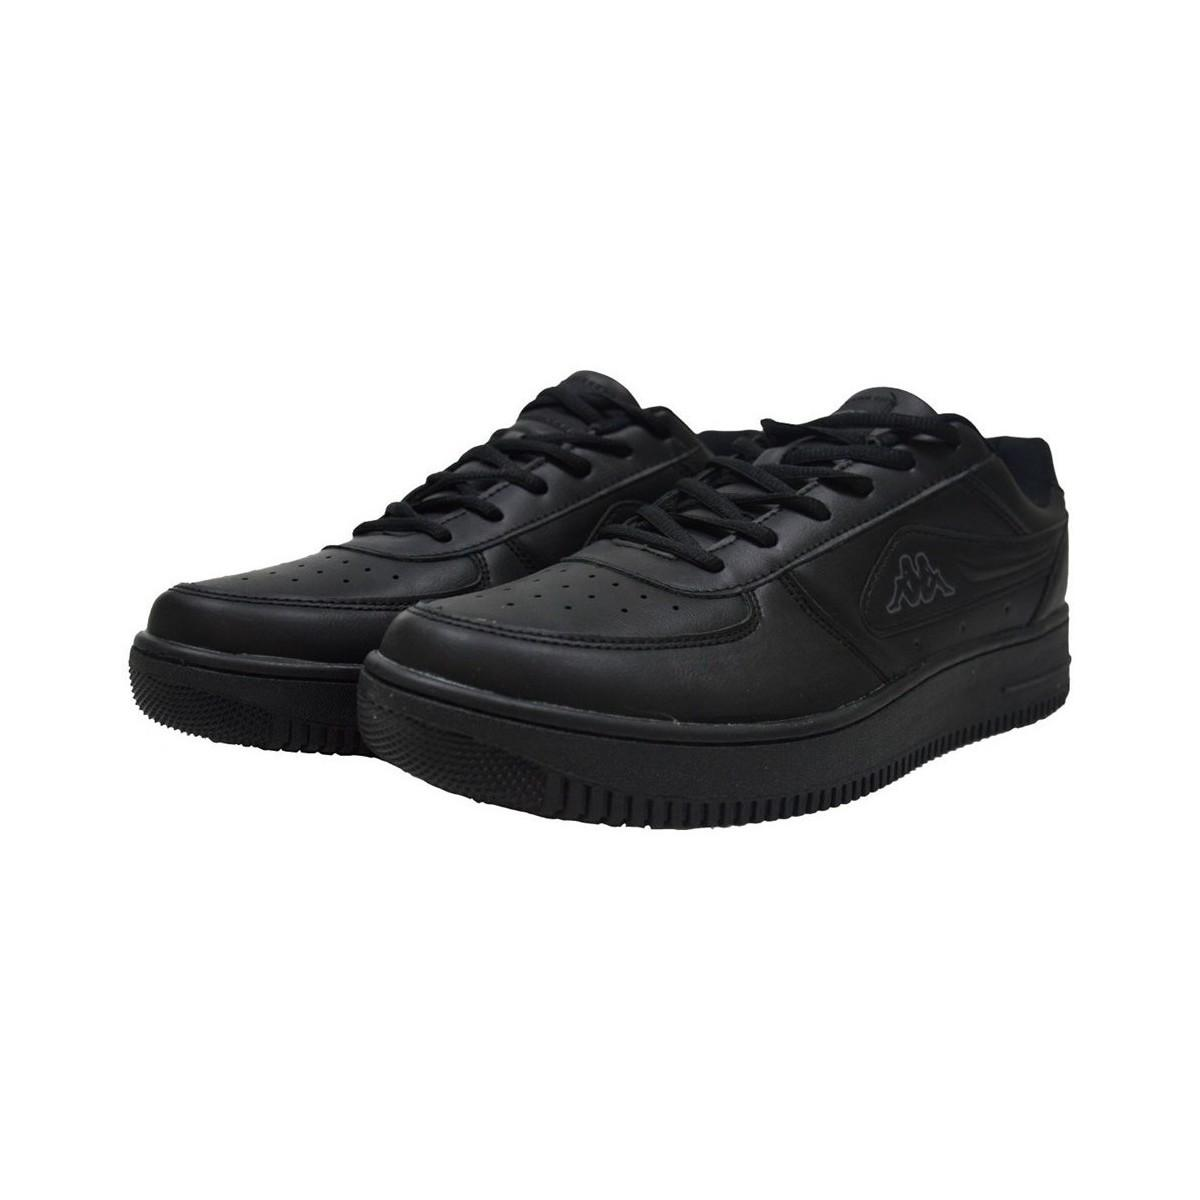 9fdc5a528bd Kappa Bash Men's Shoes (trainers) In Black in Black for Men - Lyst